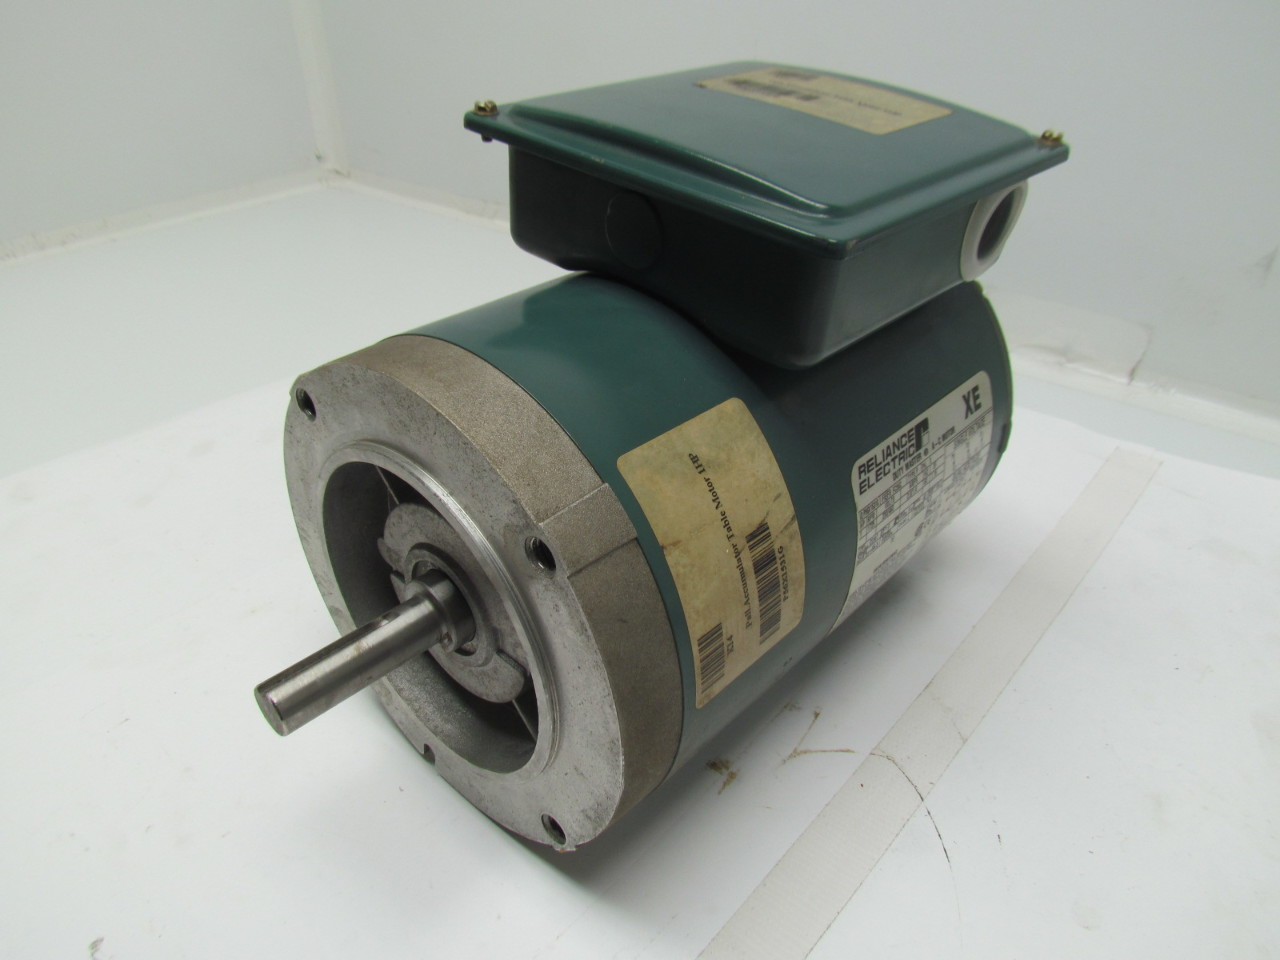 Reliance electric p56x1531g duty master 1hp 230 460v 3ph for Duty master ac motor